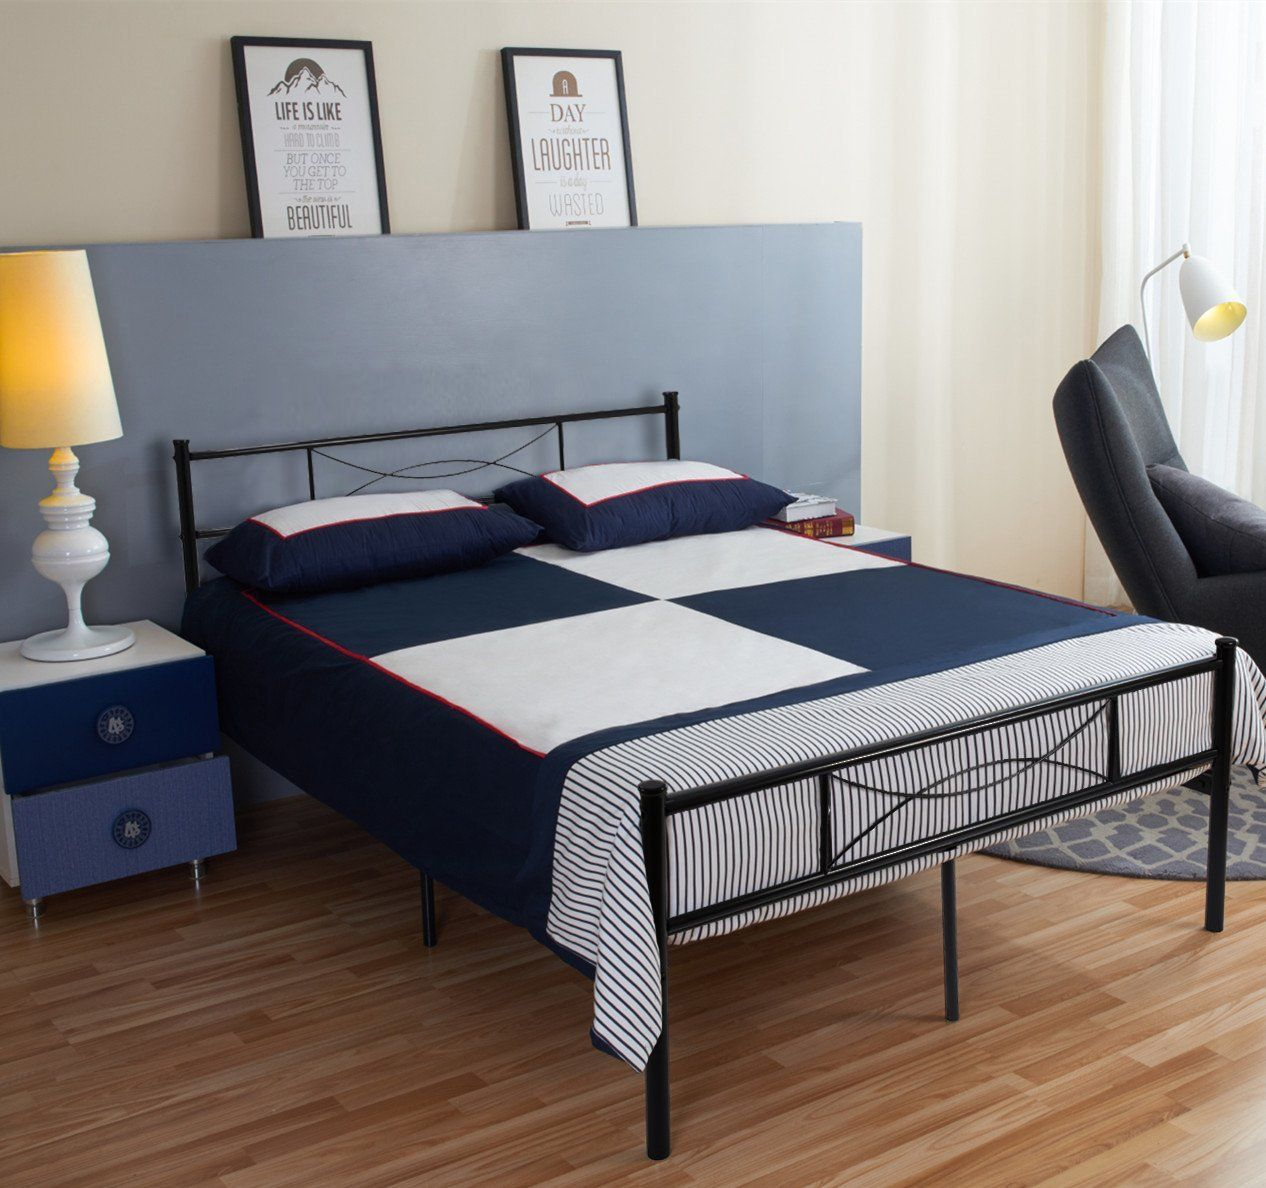 22f96674763 SimLife Metal Bed Frame Full Size 10 Legs Two Headboards Mattress  Foundation Steel Double Platform Bed